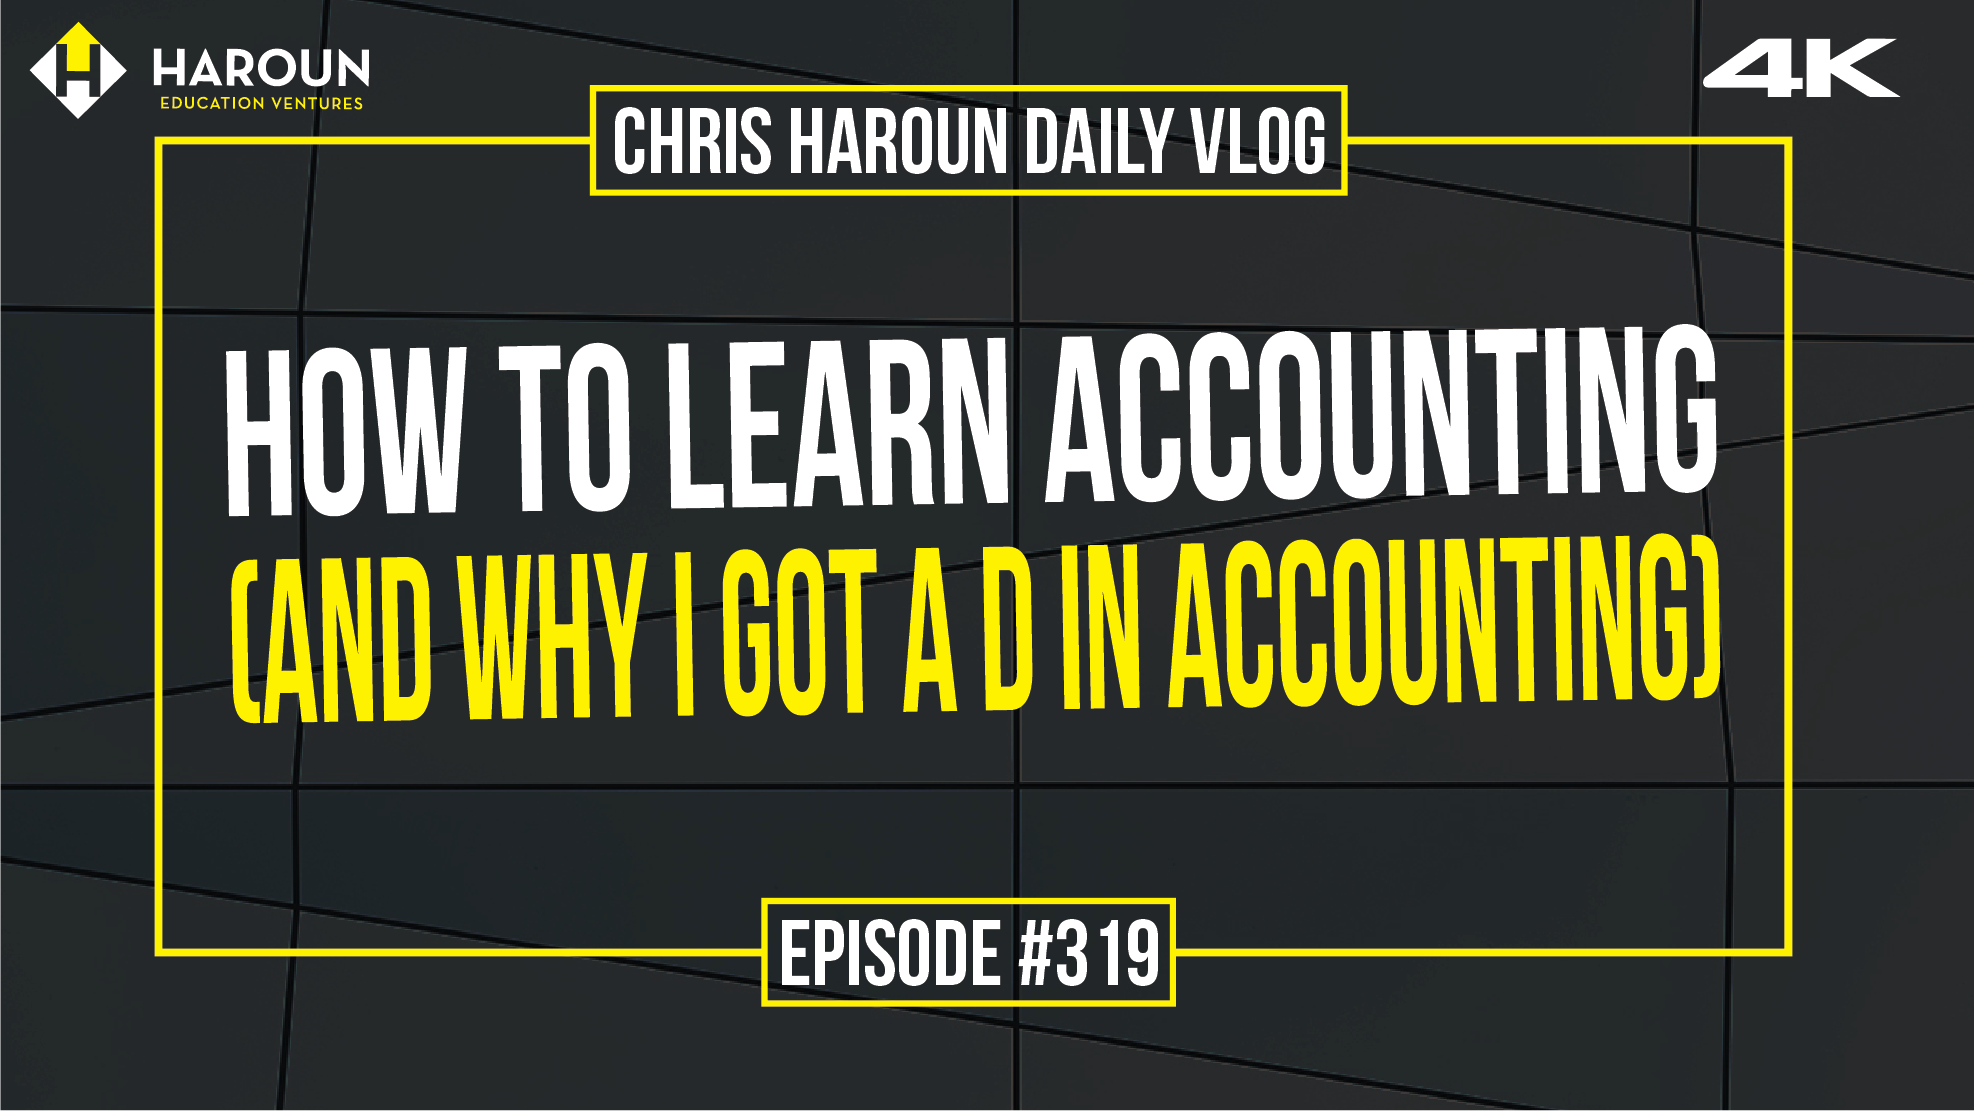 VLOG_319_6_15_2019_How to Learn Accounting (and Why I Got a D in Accounting).png